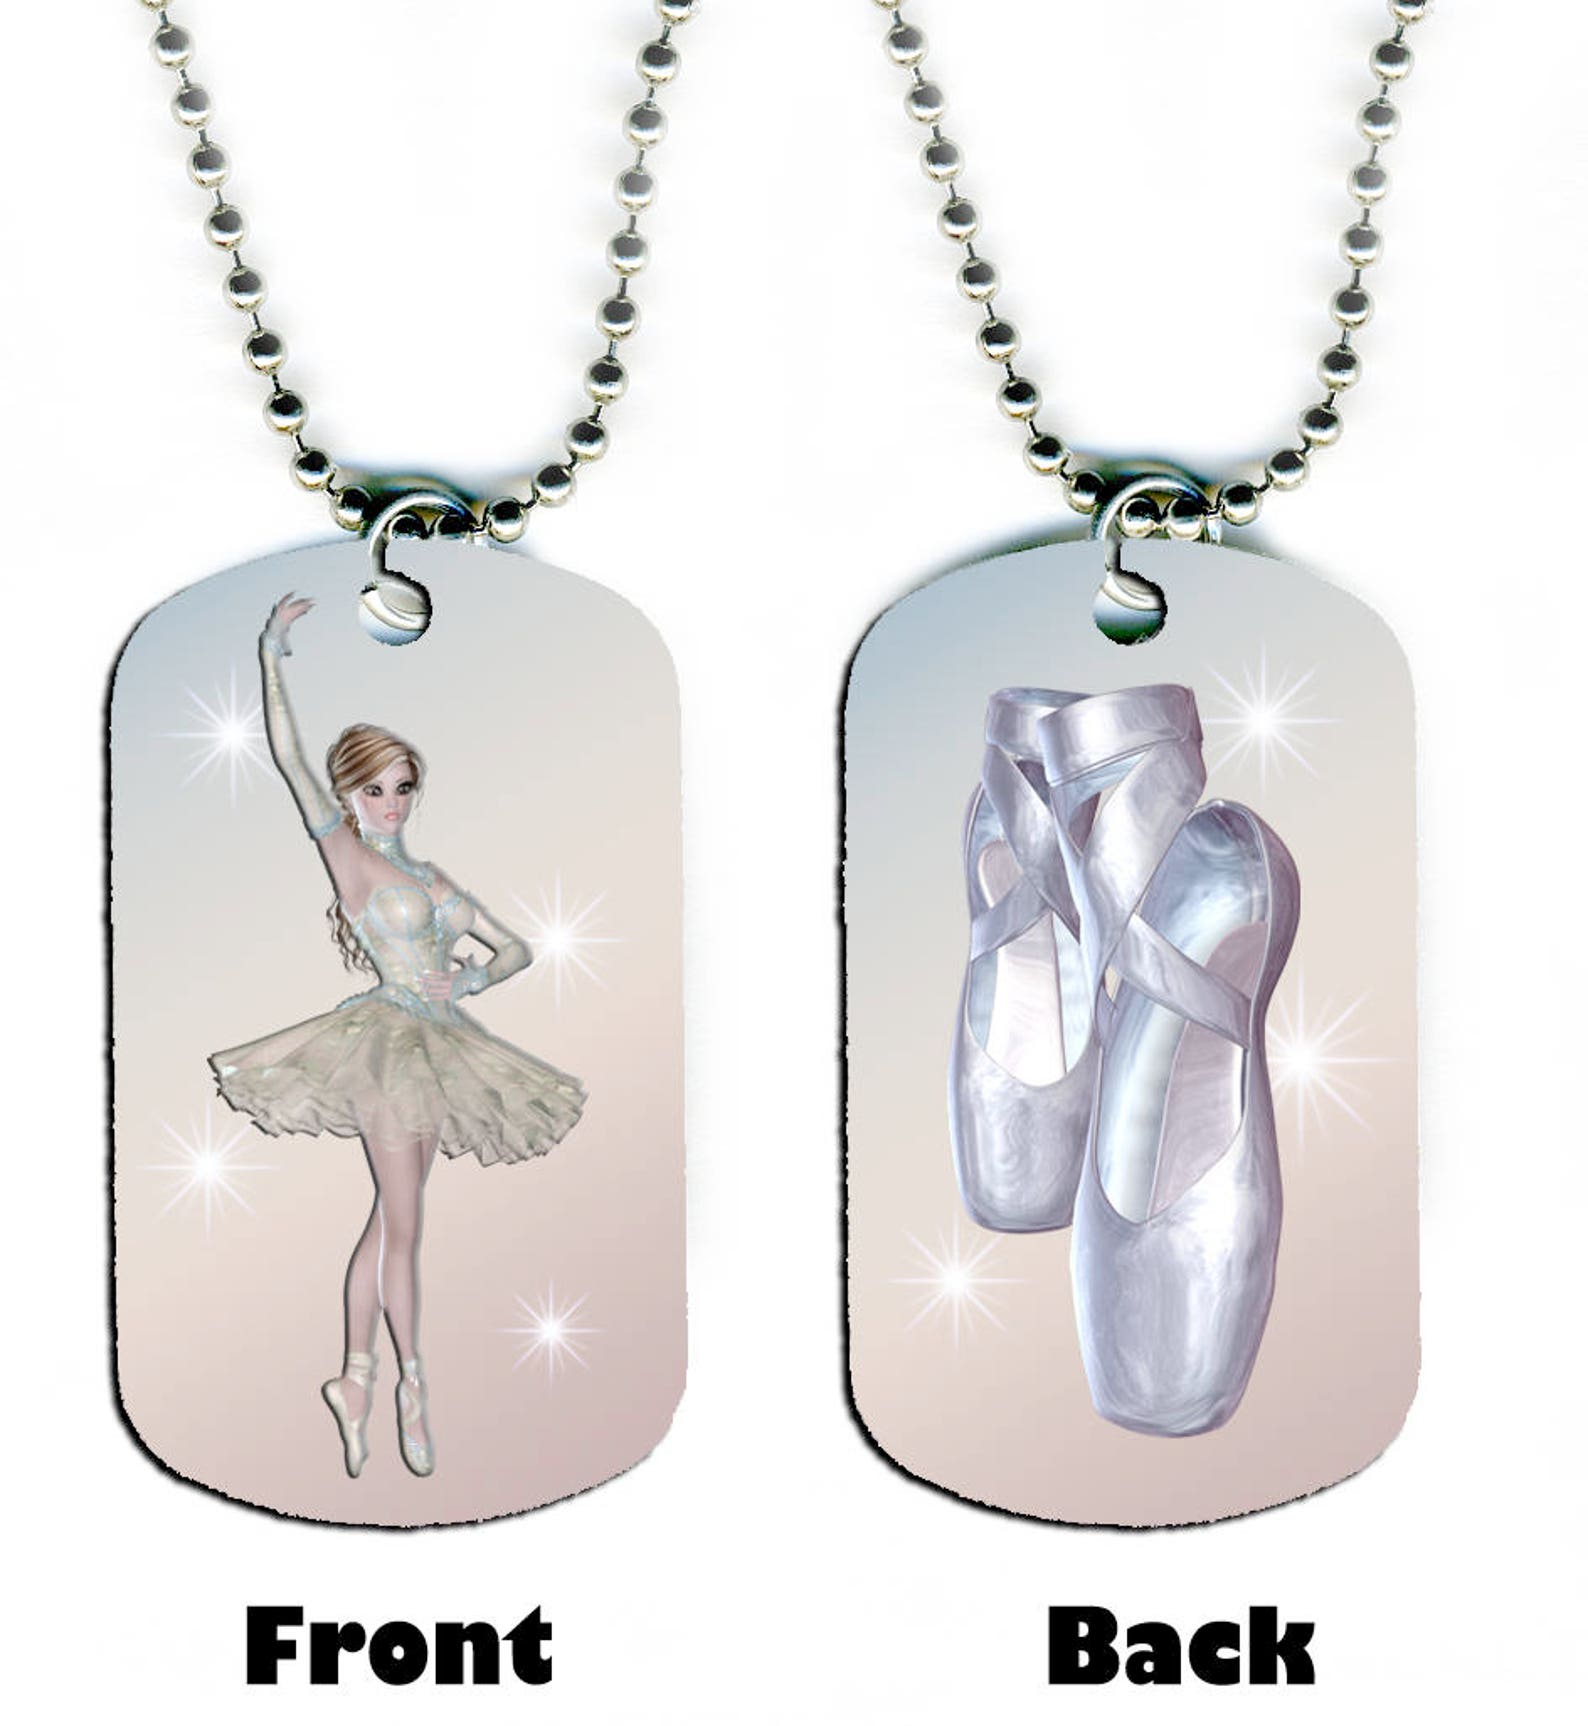 dog tag necklace - ballerina #sn1 ballet dance dancer dancing shoes